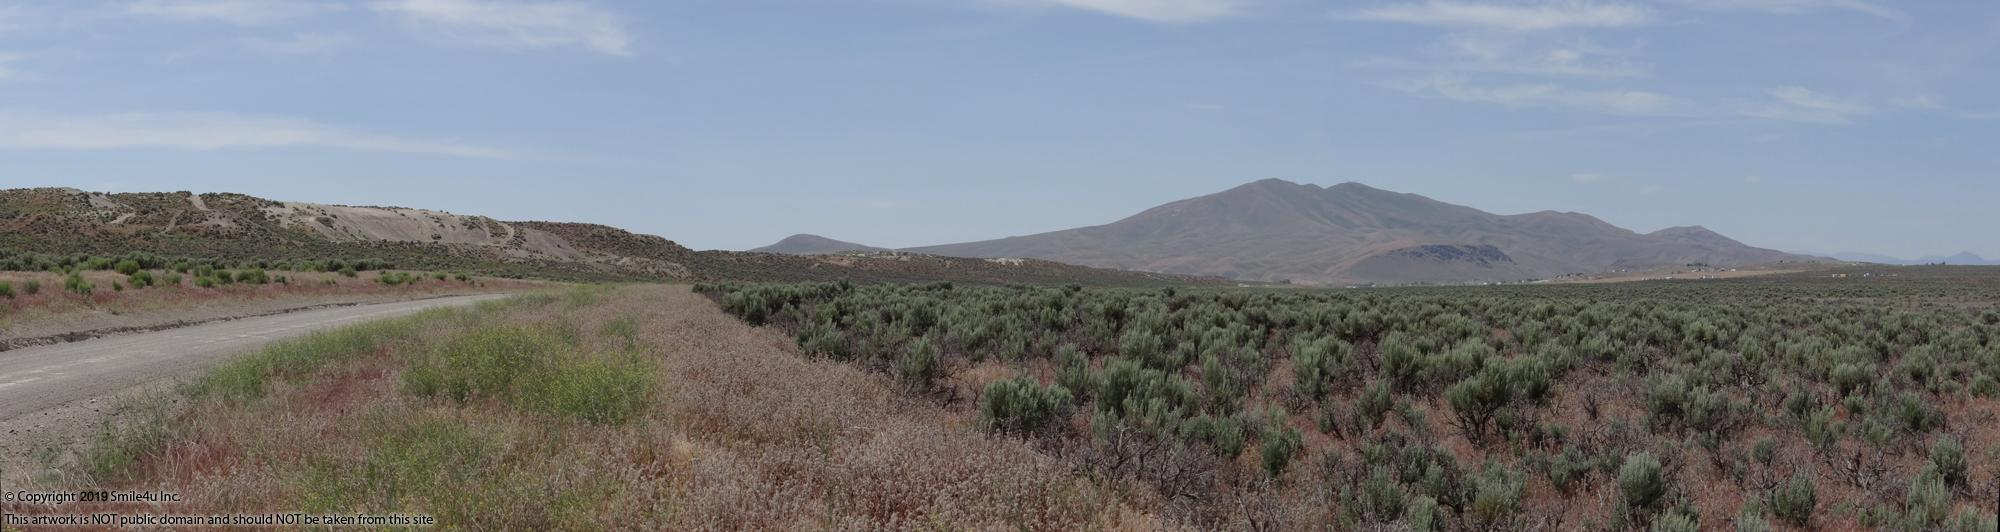 Looking S on Coal Mine Canyon Road with the Elko Hills in the distance.